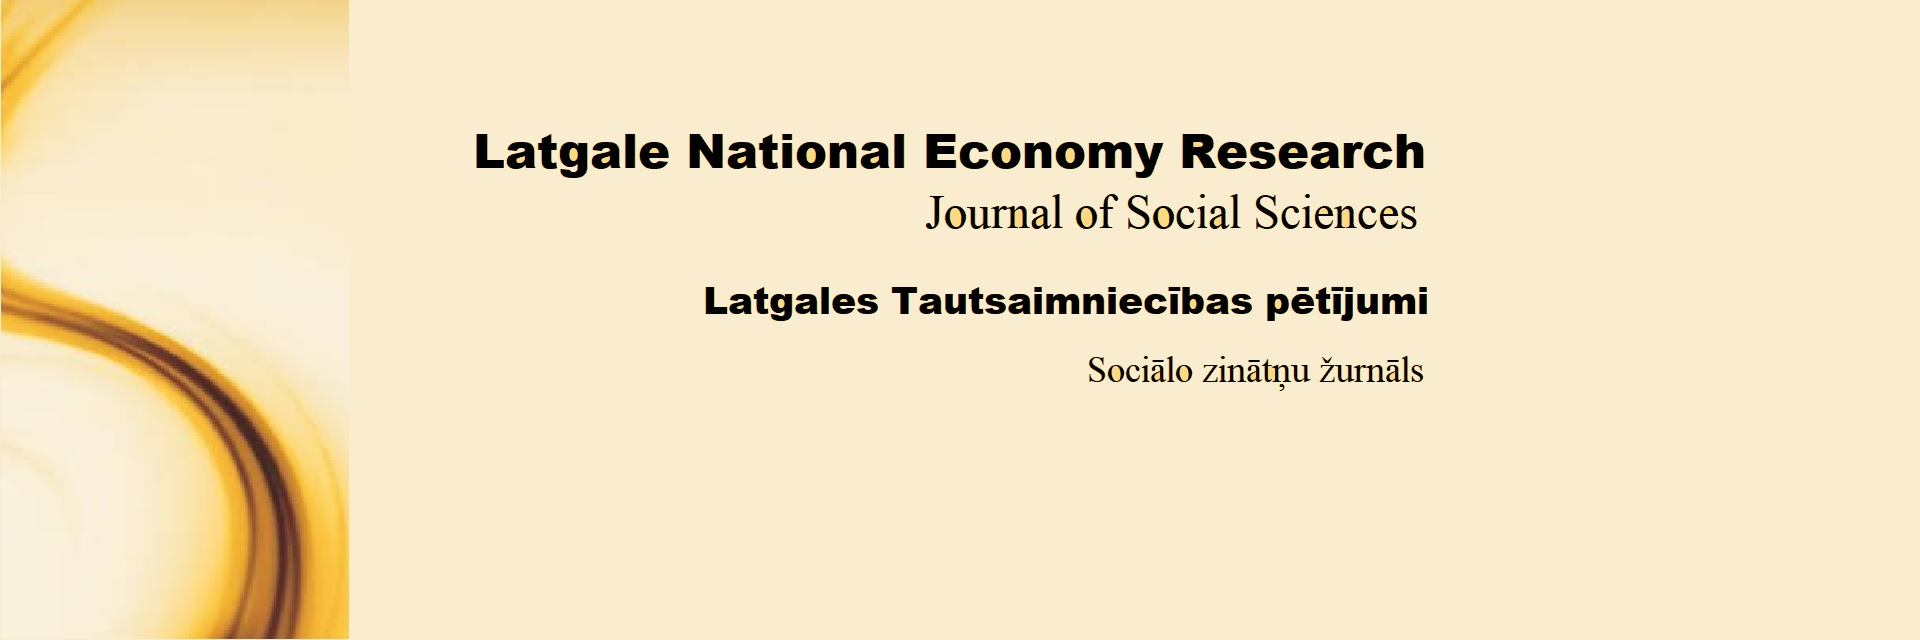 Latgale National Economy Research